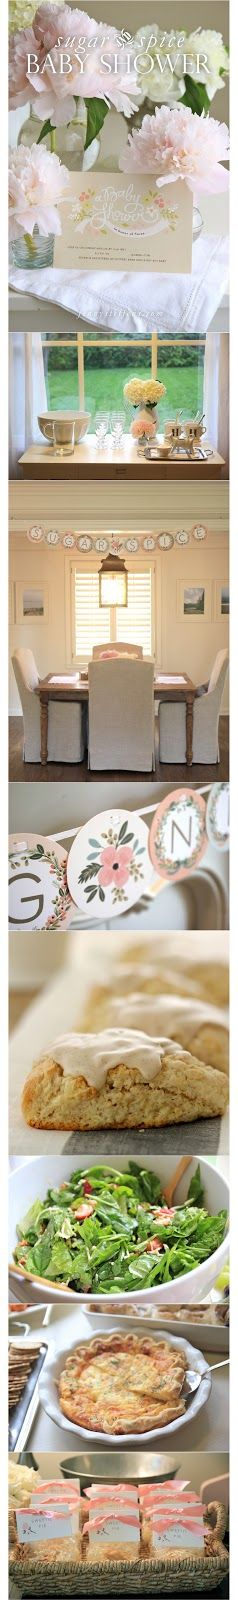 Baby Girl Shower | Brunch Menu, Peonies & Mini Pies Like the drink station, sweetie pie party favors,